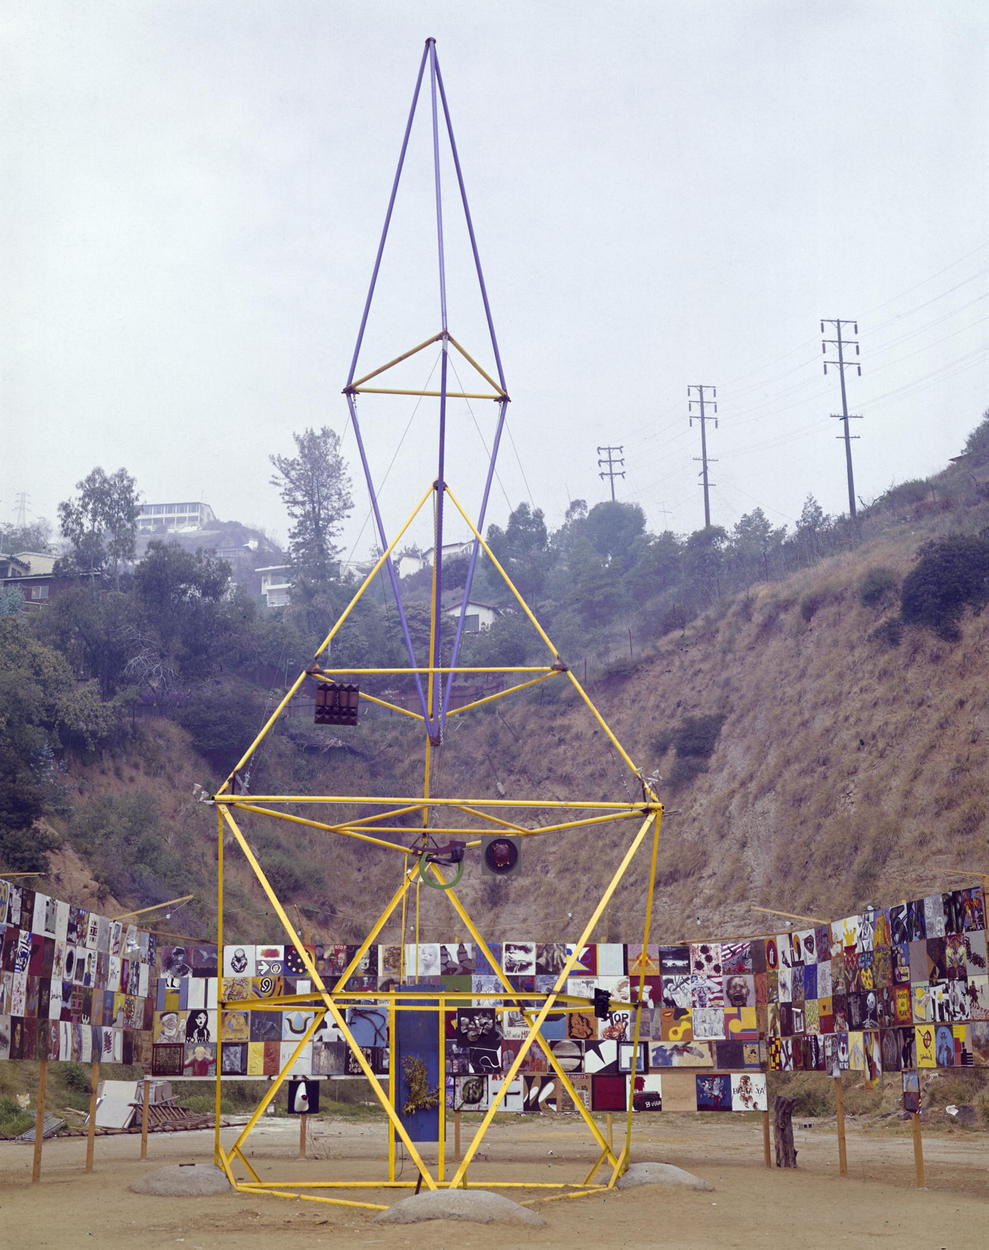 Mark di Suvero, <em>Artists' Tower of Protest</em> (Peace Tower), 1966. Steel and mixed media, 55 ft. Installed Los Angeles. Charles Brittin Archive, The Getty Research Institute, Los Angeles, (2005.M.11). Photo: Charles Brittin. © J. Paul Getty Trust.